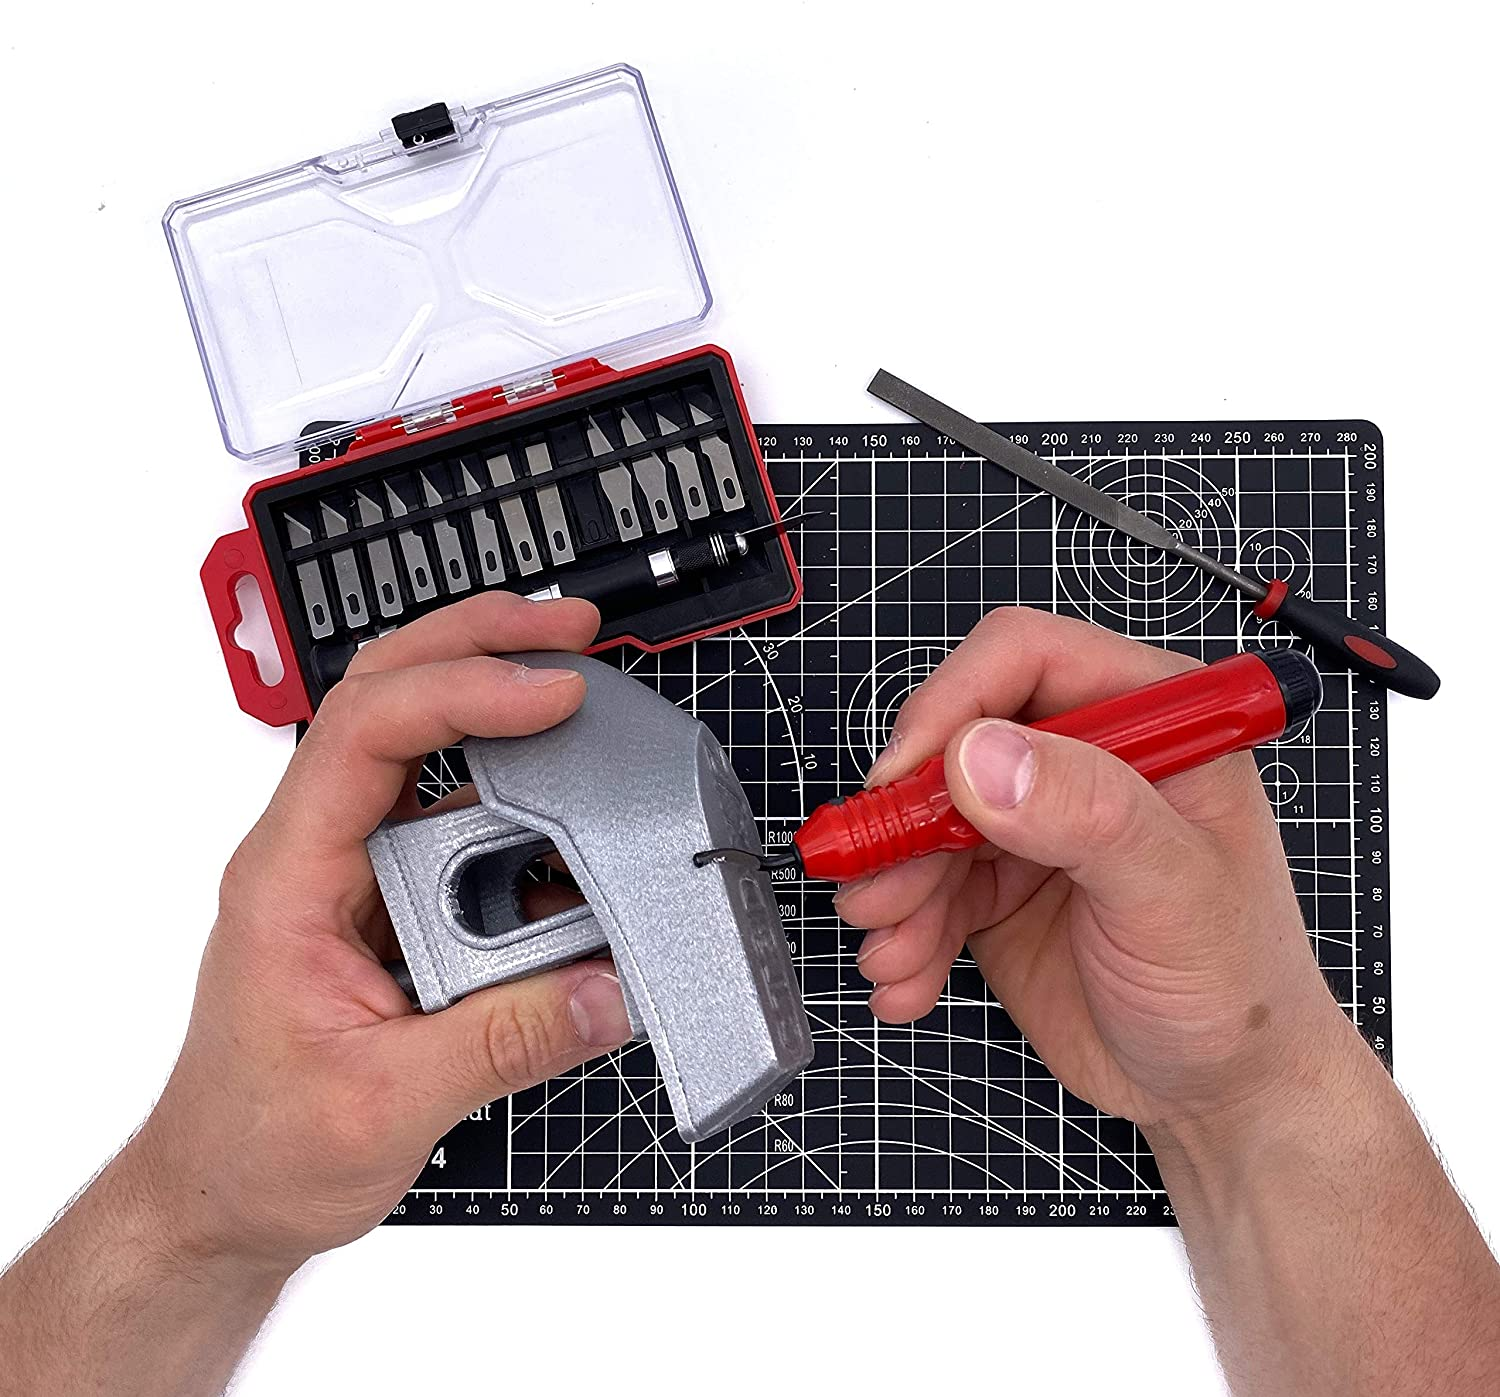 3D Printer Printing Accessory Set 3D Printing Tool Kit: Deburring Tool Precision Knives Cutting Mat Wire Brushes 3DLAB EUROPE Calipers Tool Set Printer Tools Nozzle Cleaning Needles